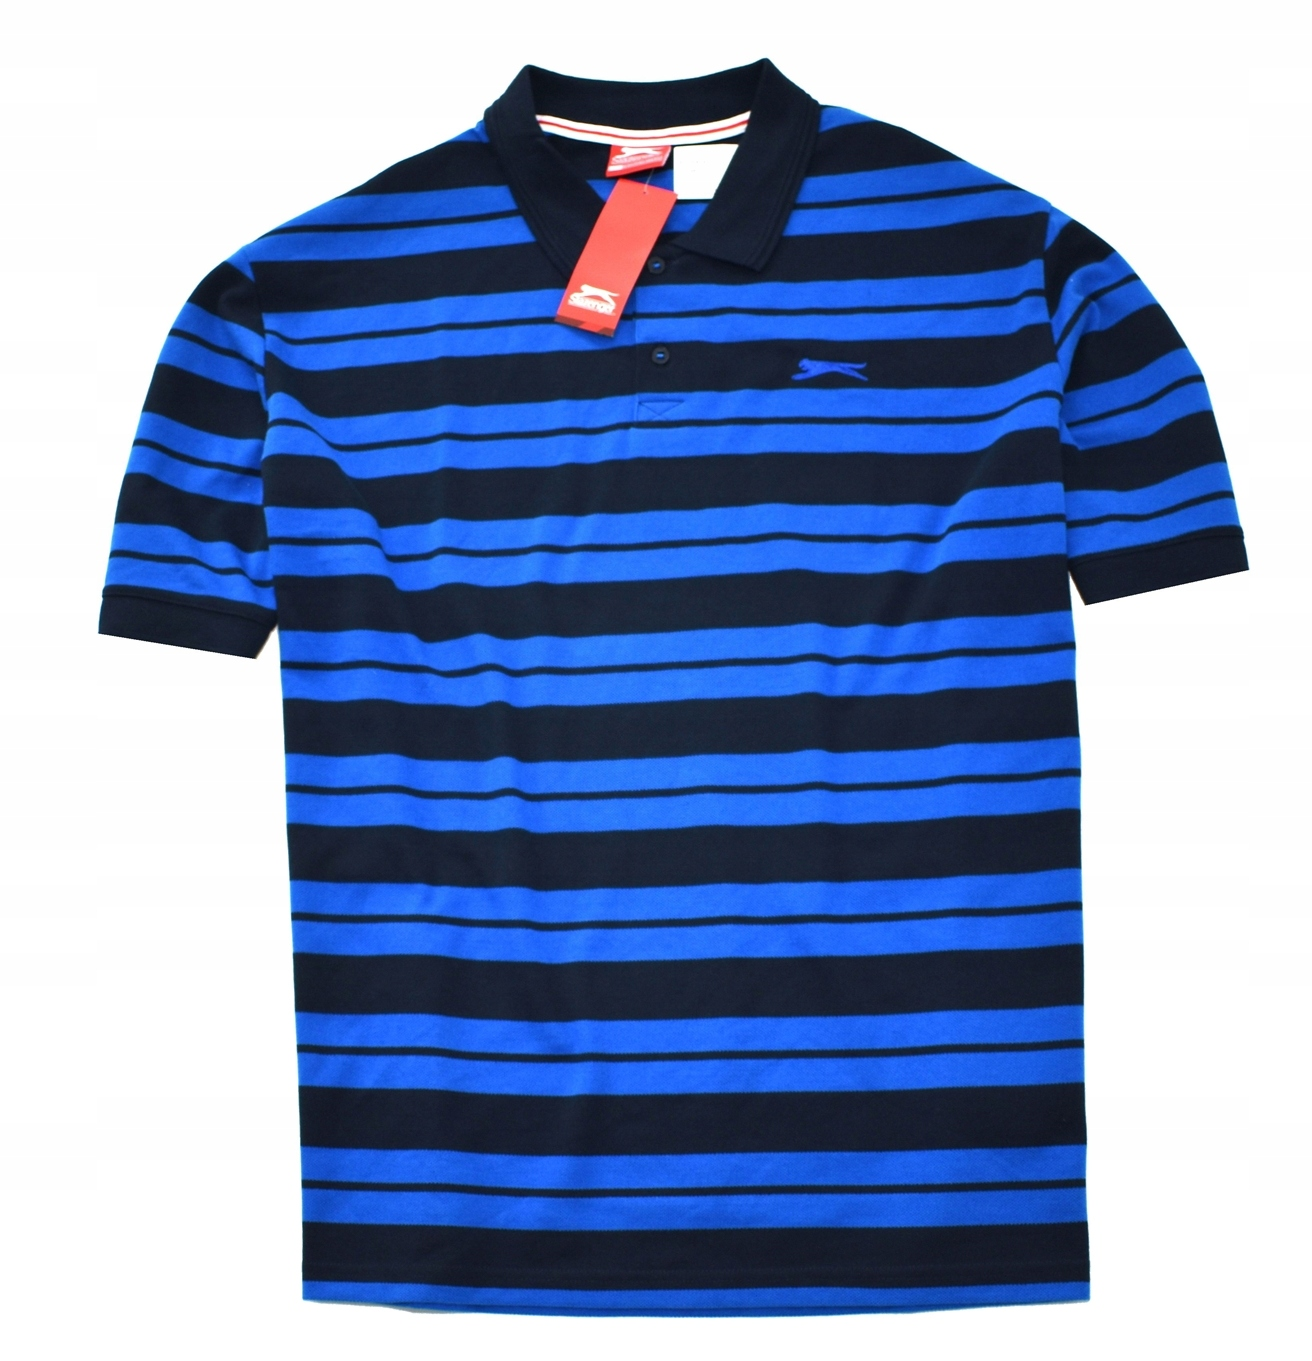 MM 90 SLAZENGER_TRENDY NEW STRONG BLUE TEE_XXXXL